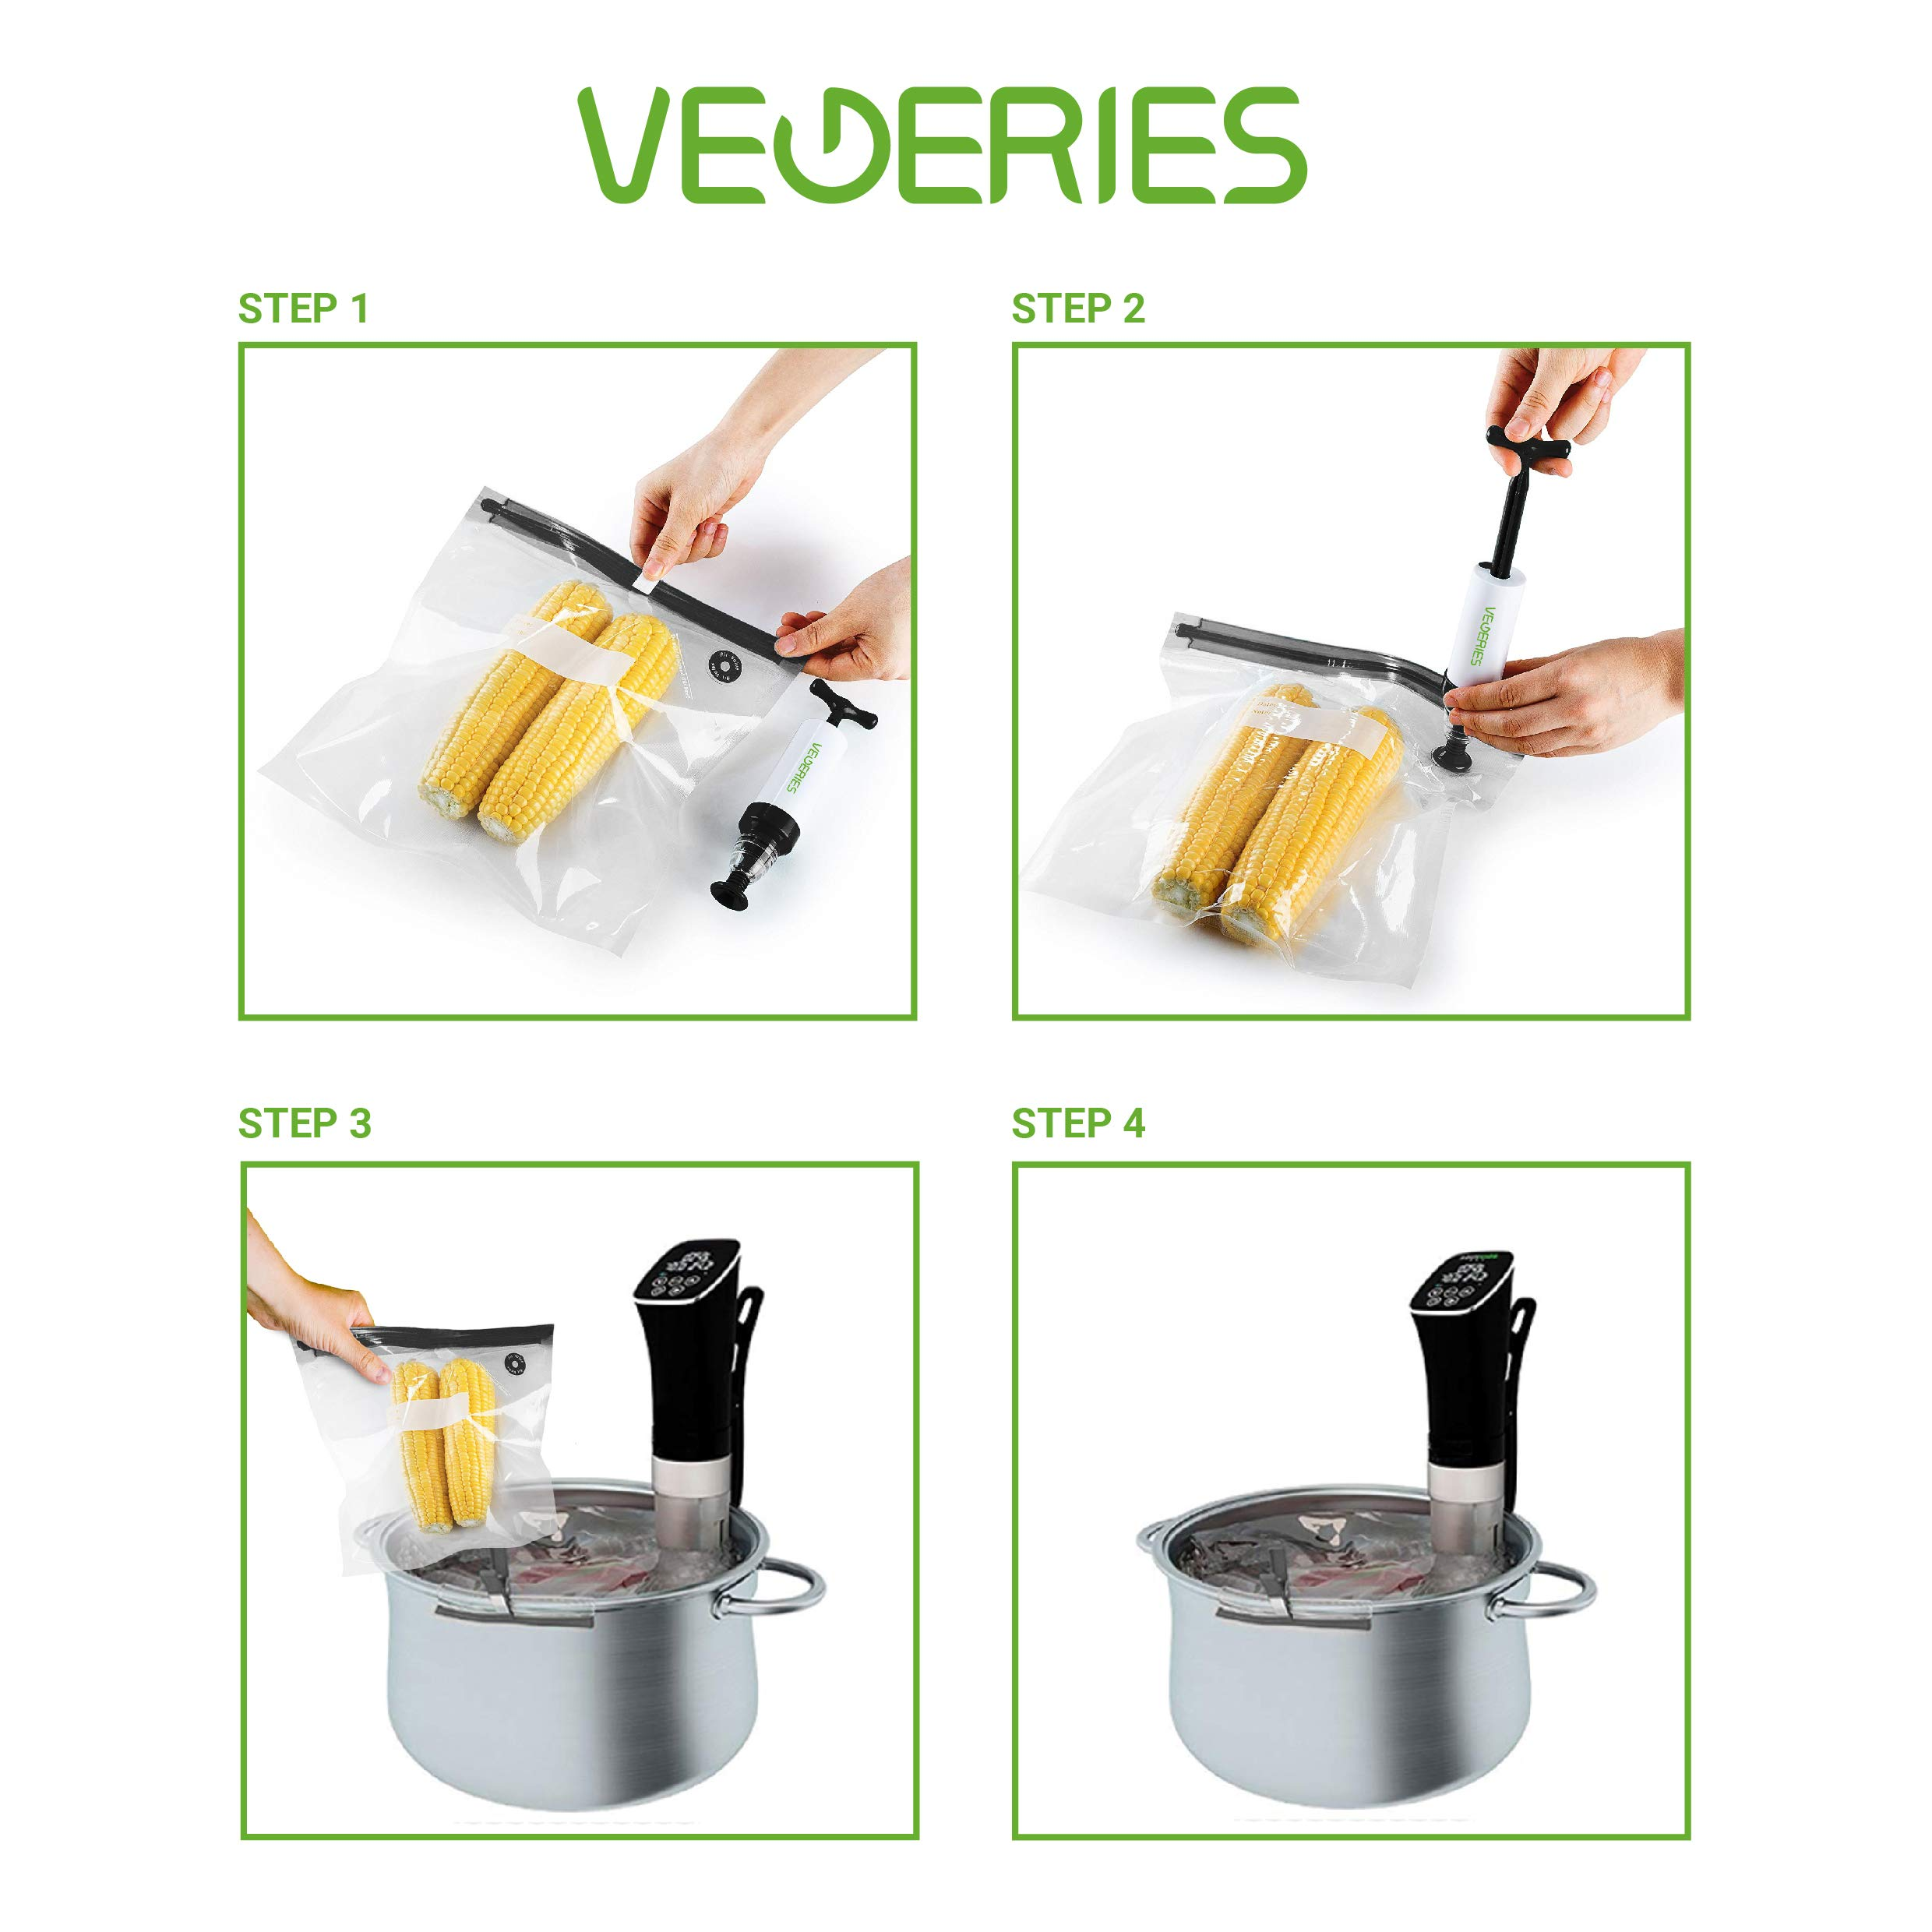 Sous Vide Bags 30 Reusable Vacuum Food Storage Bags for Anova and Joule Cookers - 3 sizes Sous Vide Bag Kit with Pump - 4 Sealing Clips - 4 Sous Vide Bag Clips for Food Storage and Sous Vide Cooking by VEGERIES (Image #4)